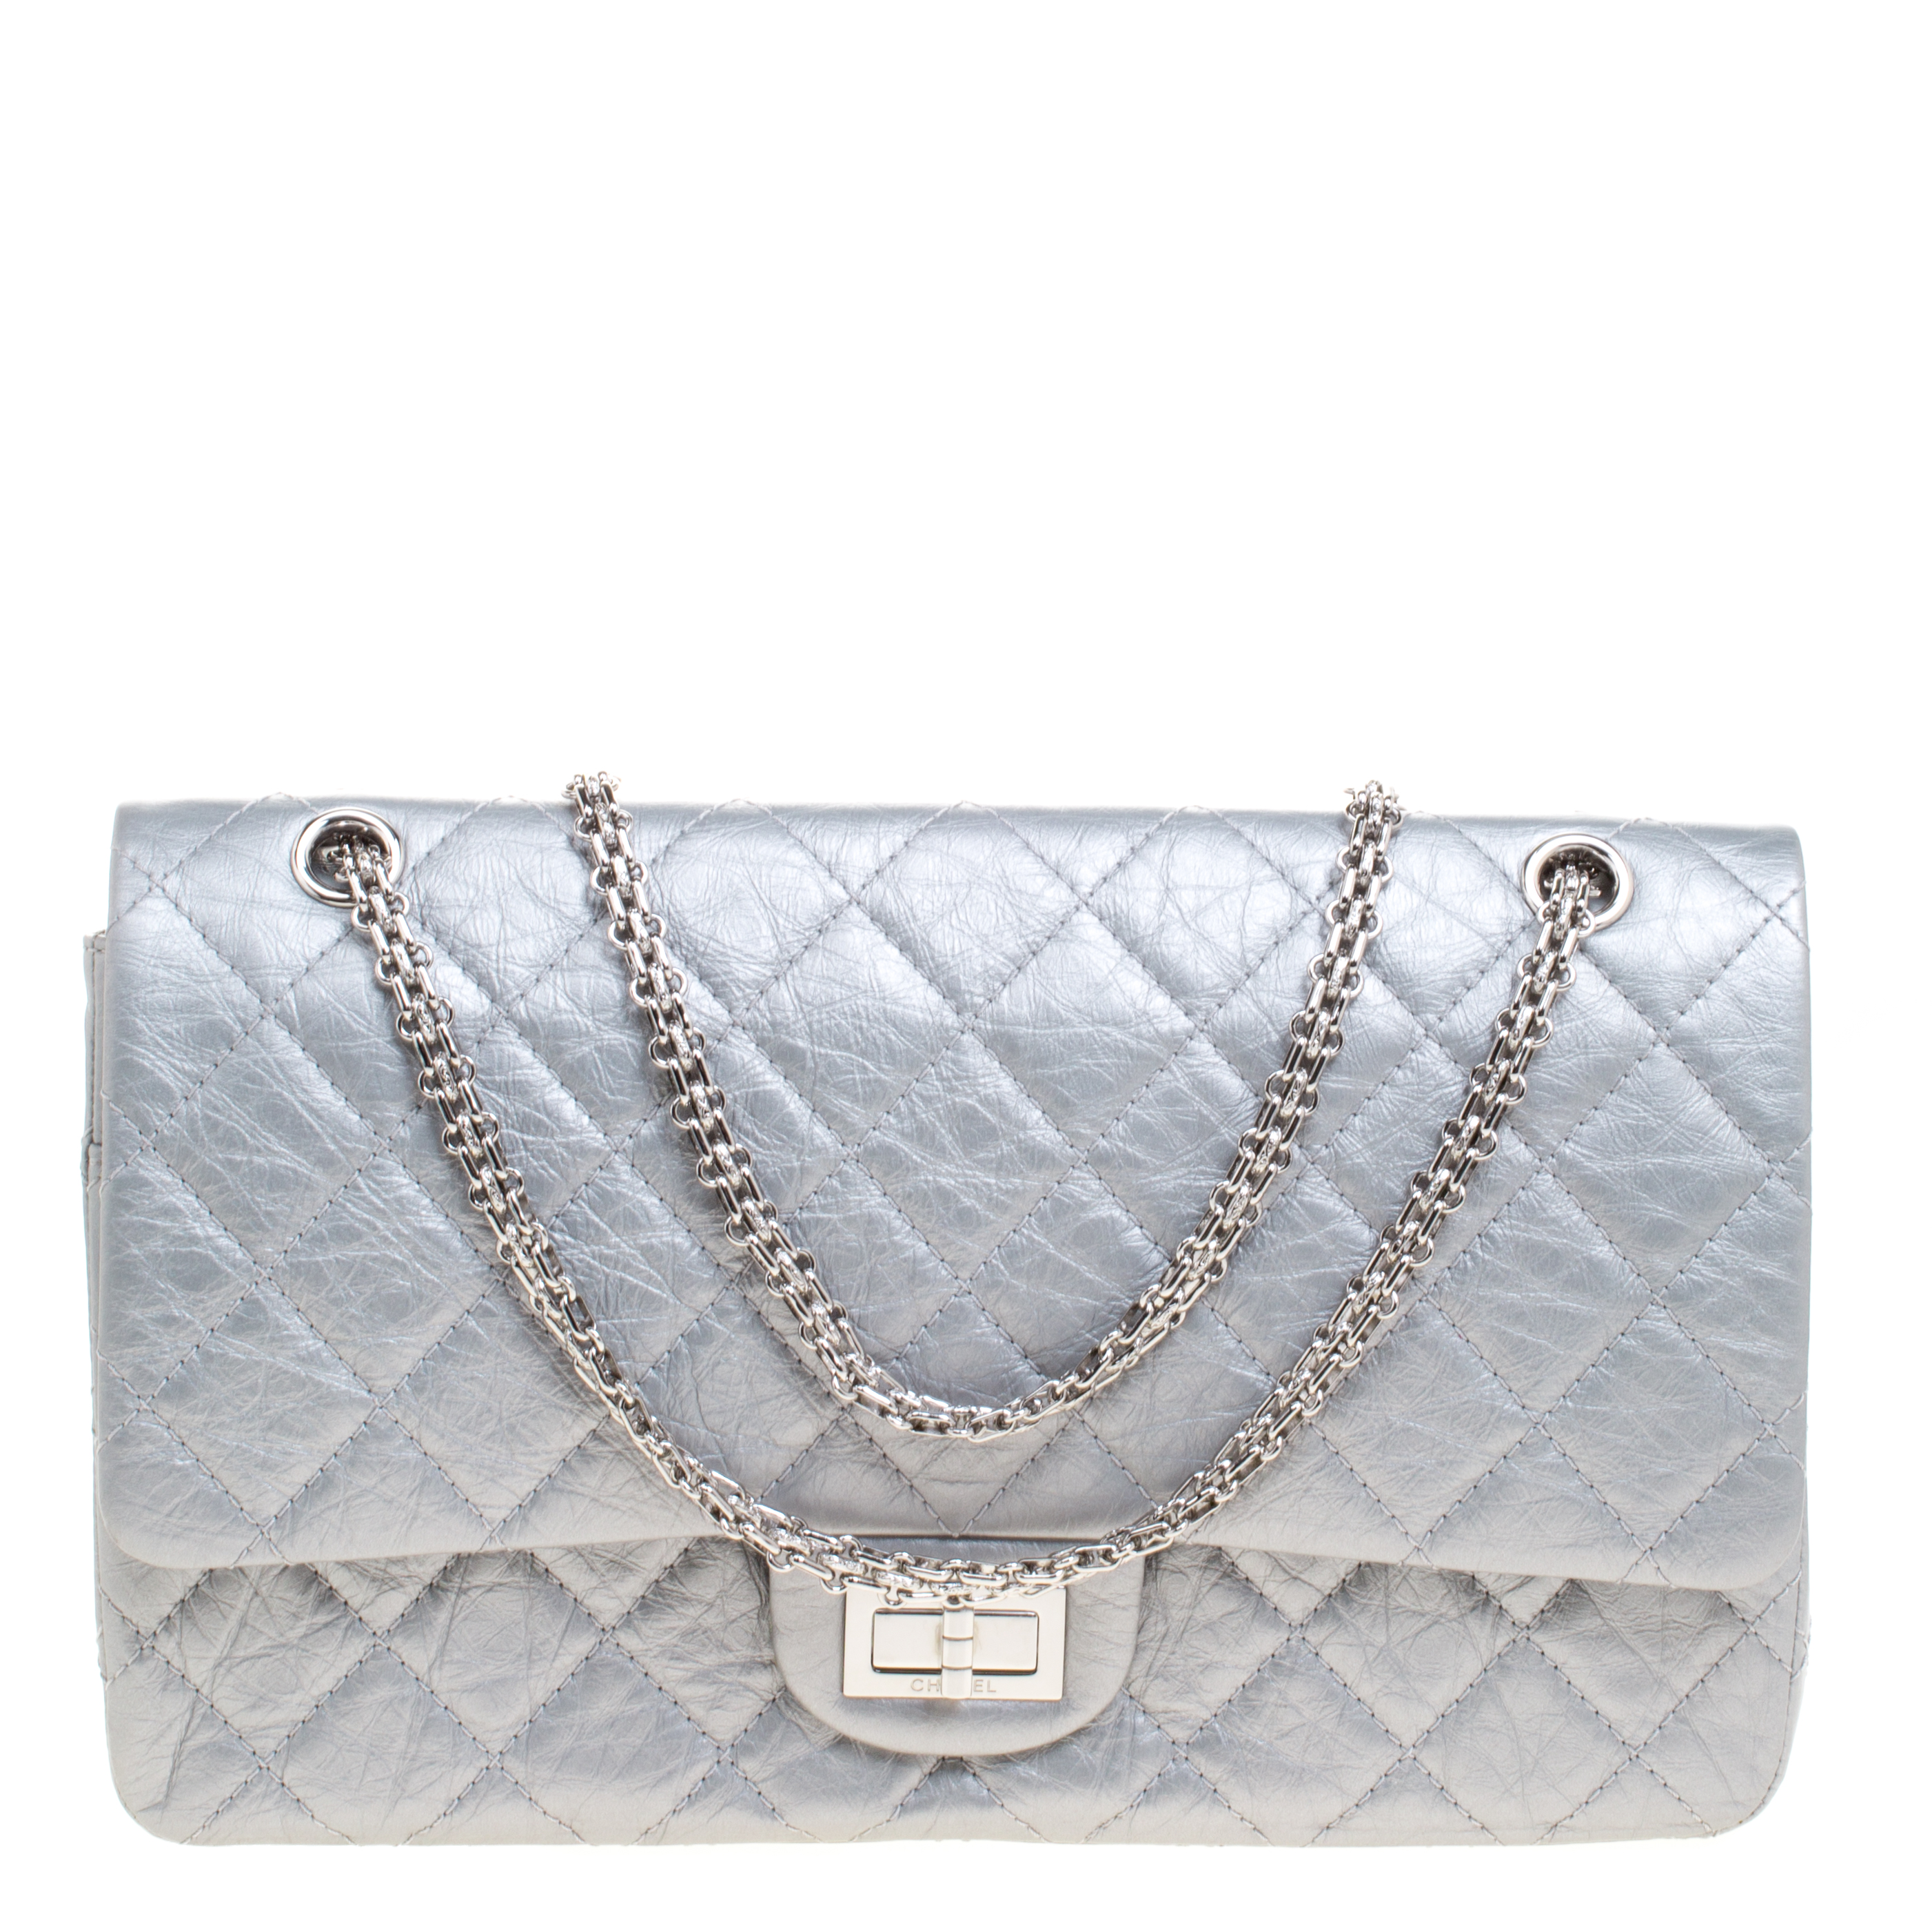 d6017ef66f65 Buy Chanel Metallic Silver Quilted Leather Reissue 2.55 Classic 227 ...